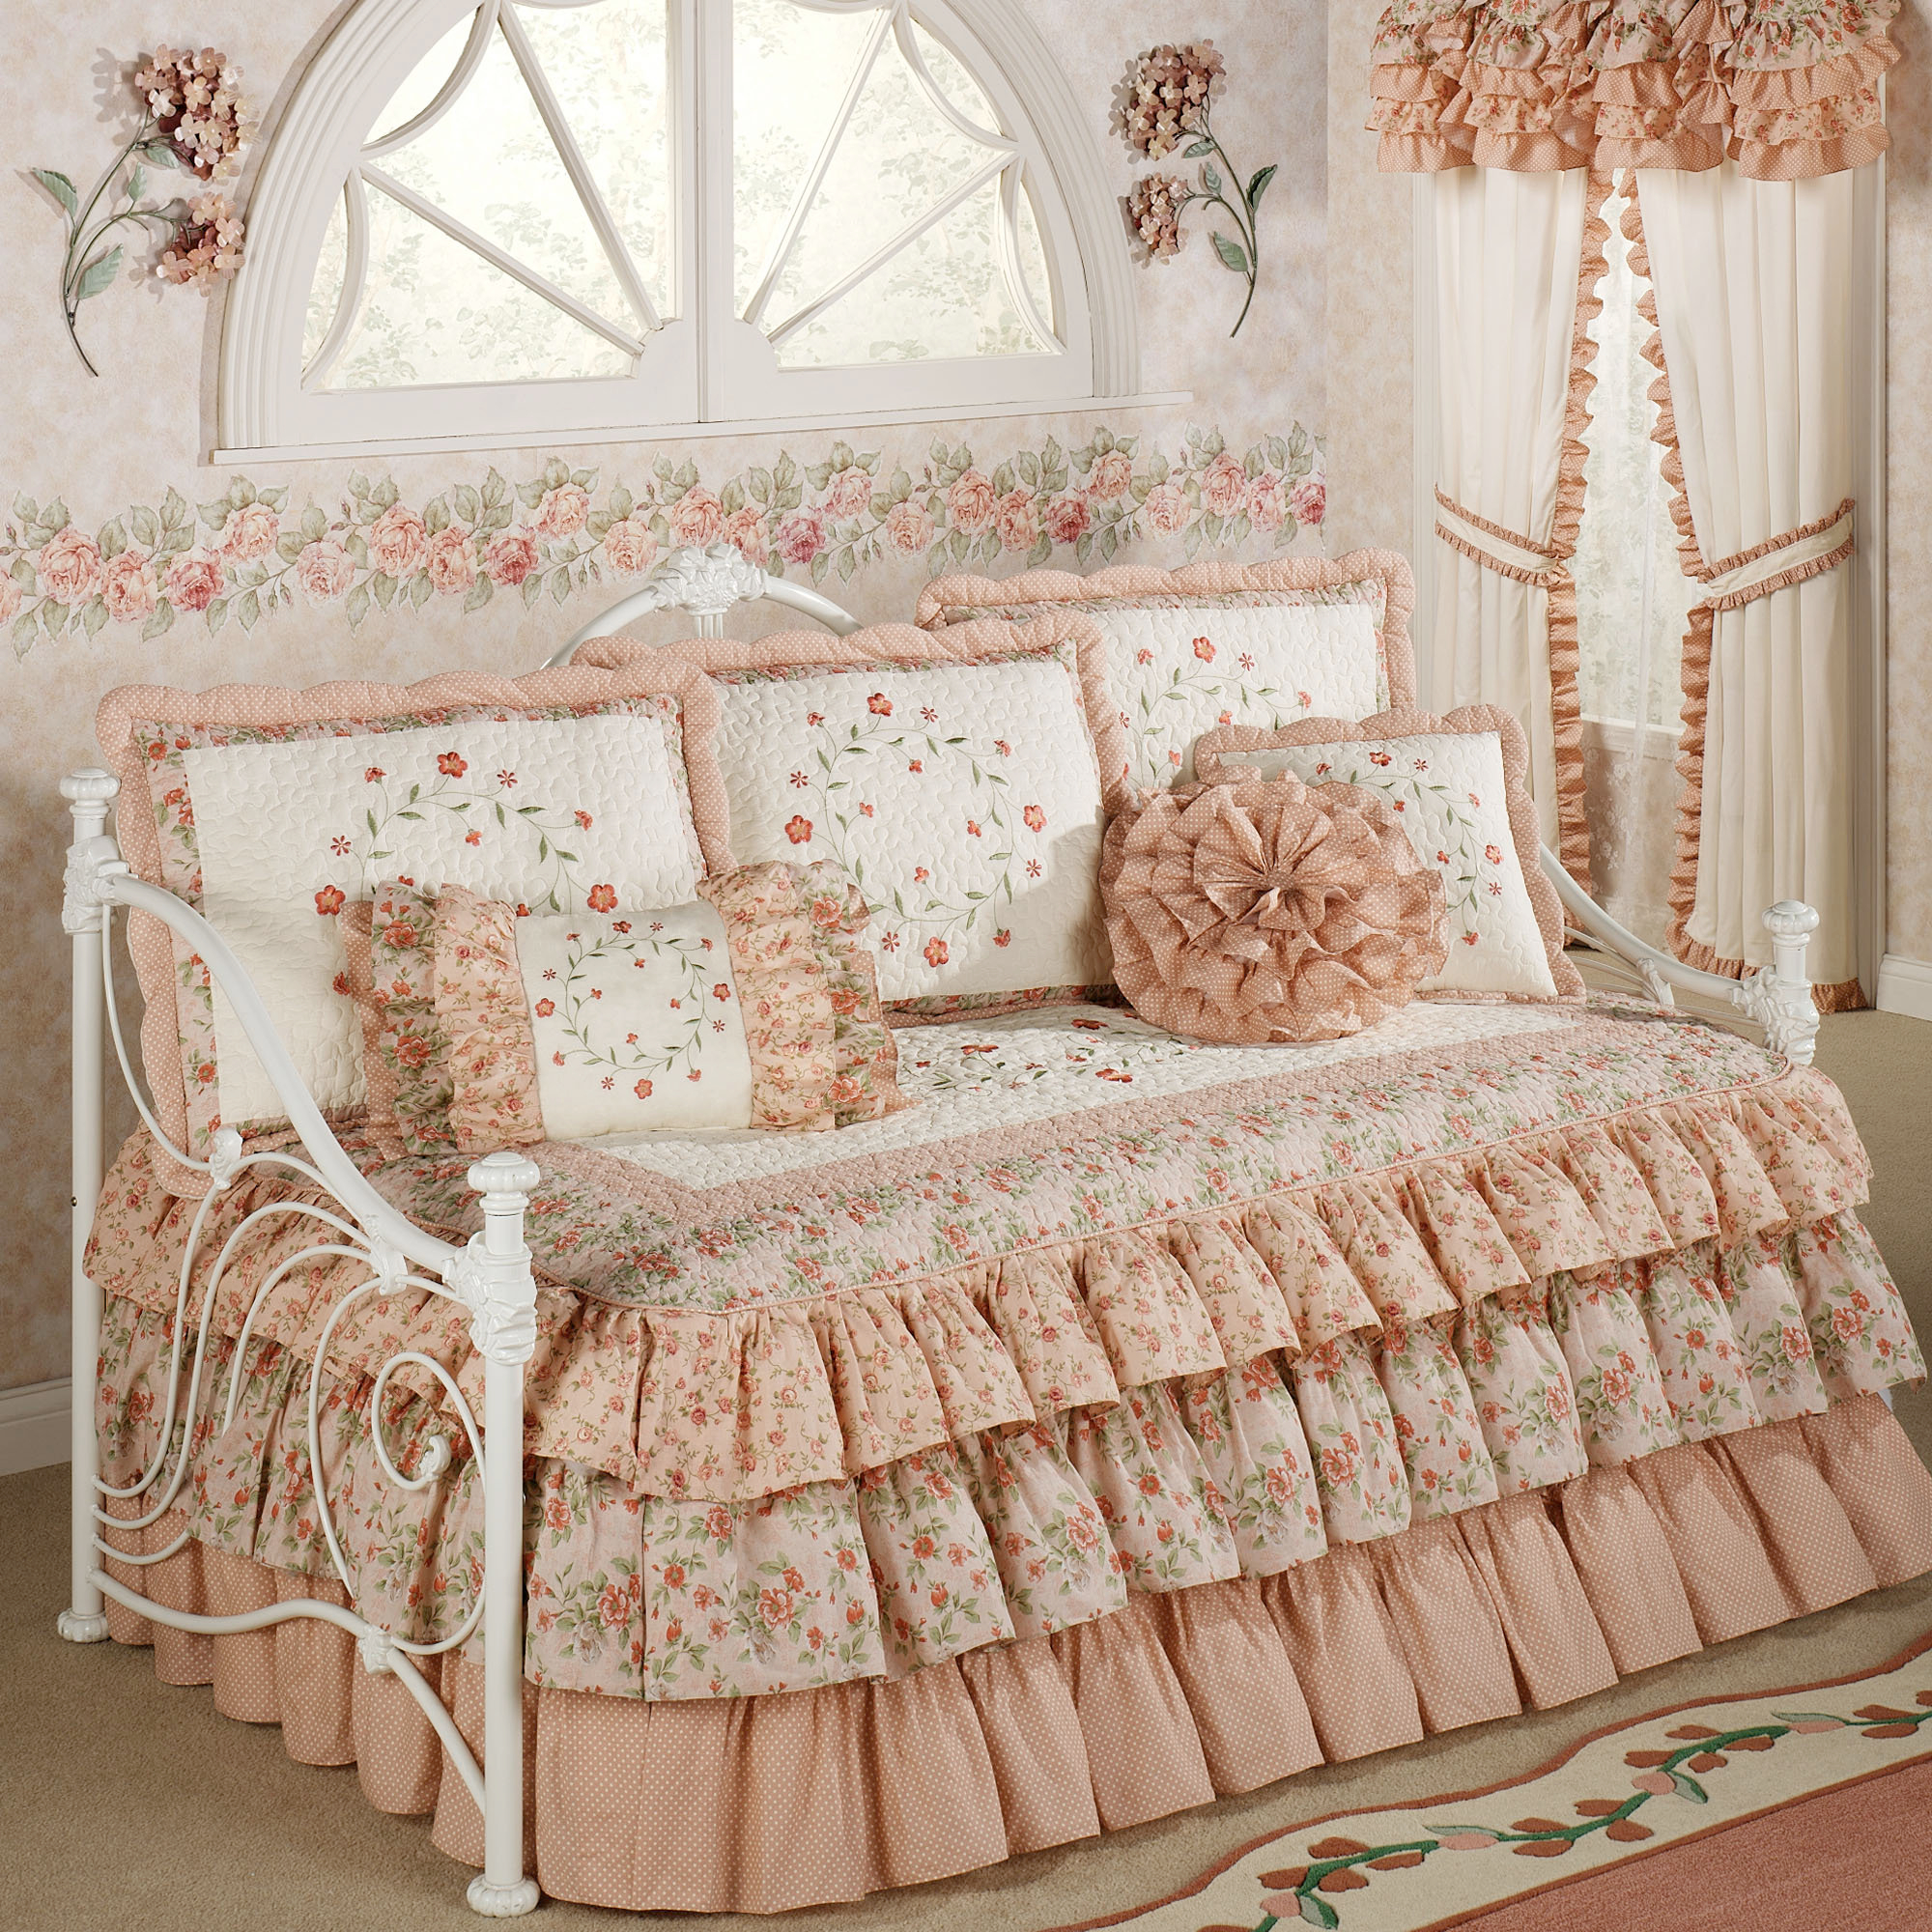 Breathtaking Full Comforter Sets Bed Queen Size And King Bedsize Also Pillows And Cushion Combined With Headboards And Curtains